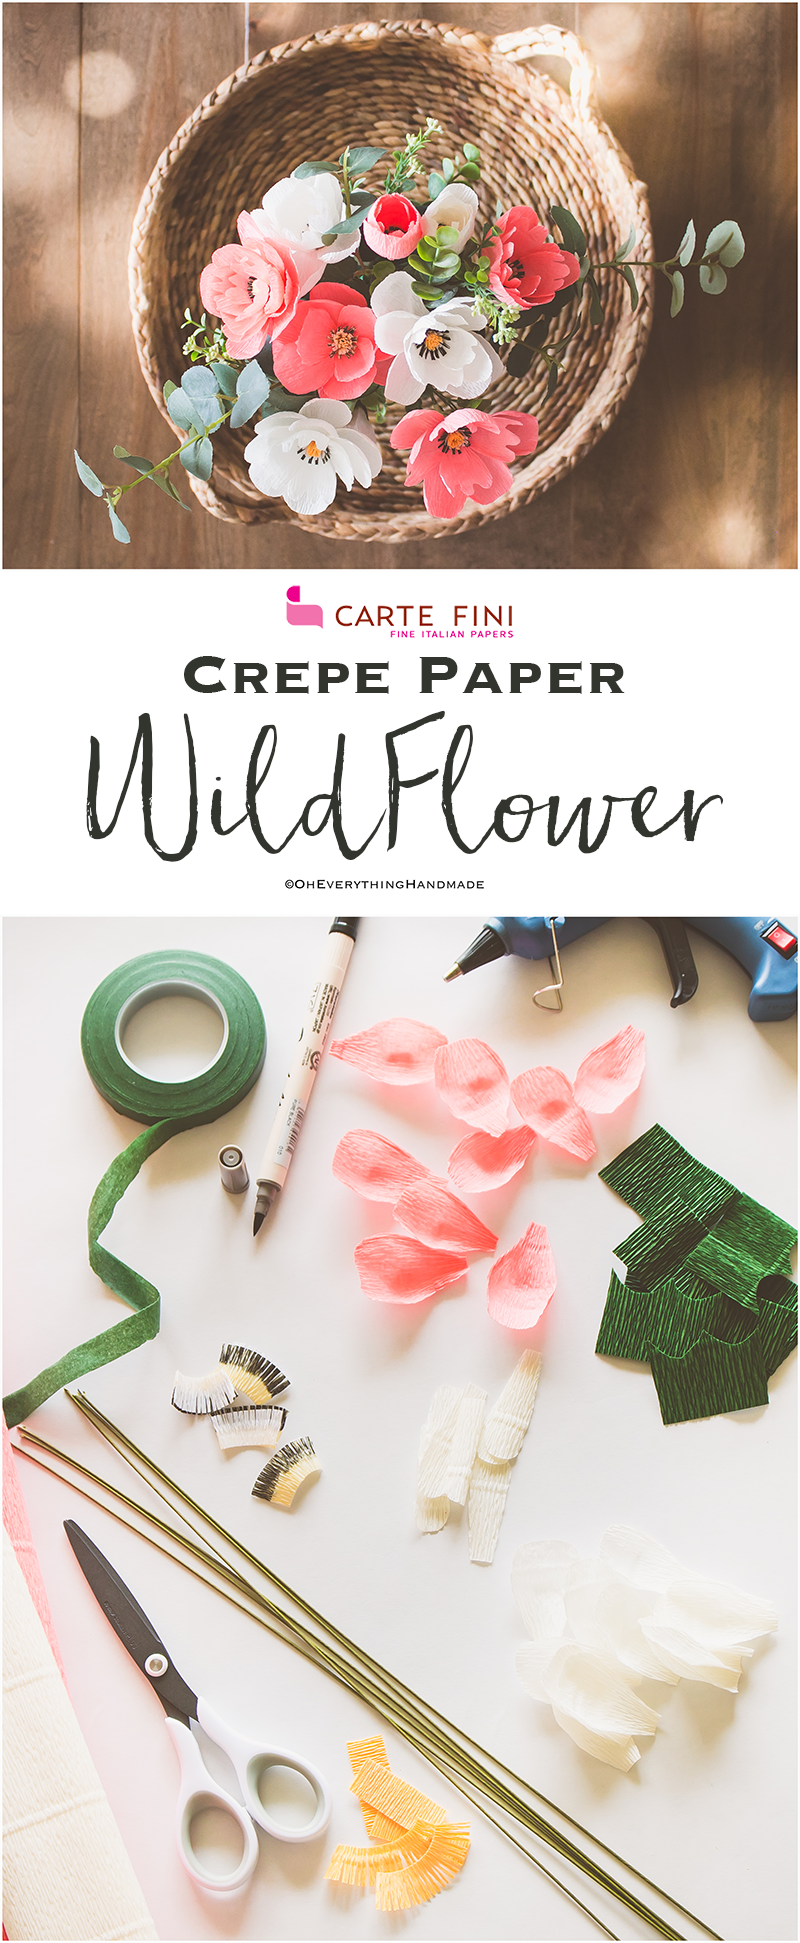 Crepe Paper Wildflower Crafty 2 The Corediy Galore Pinterest